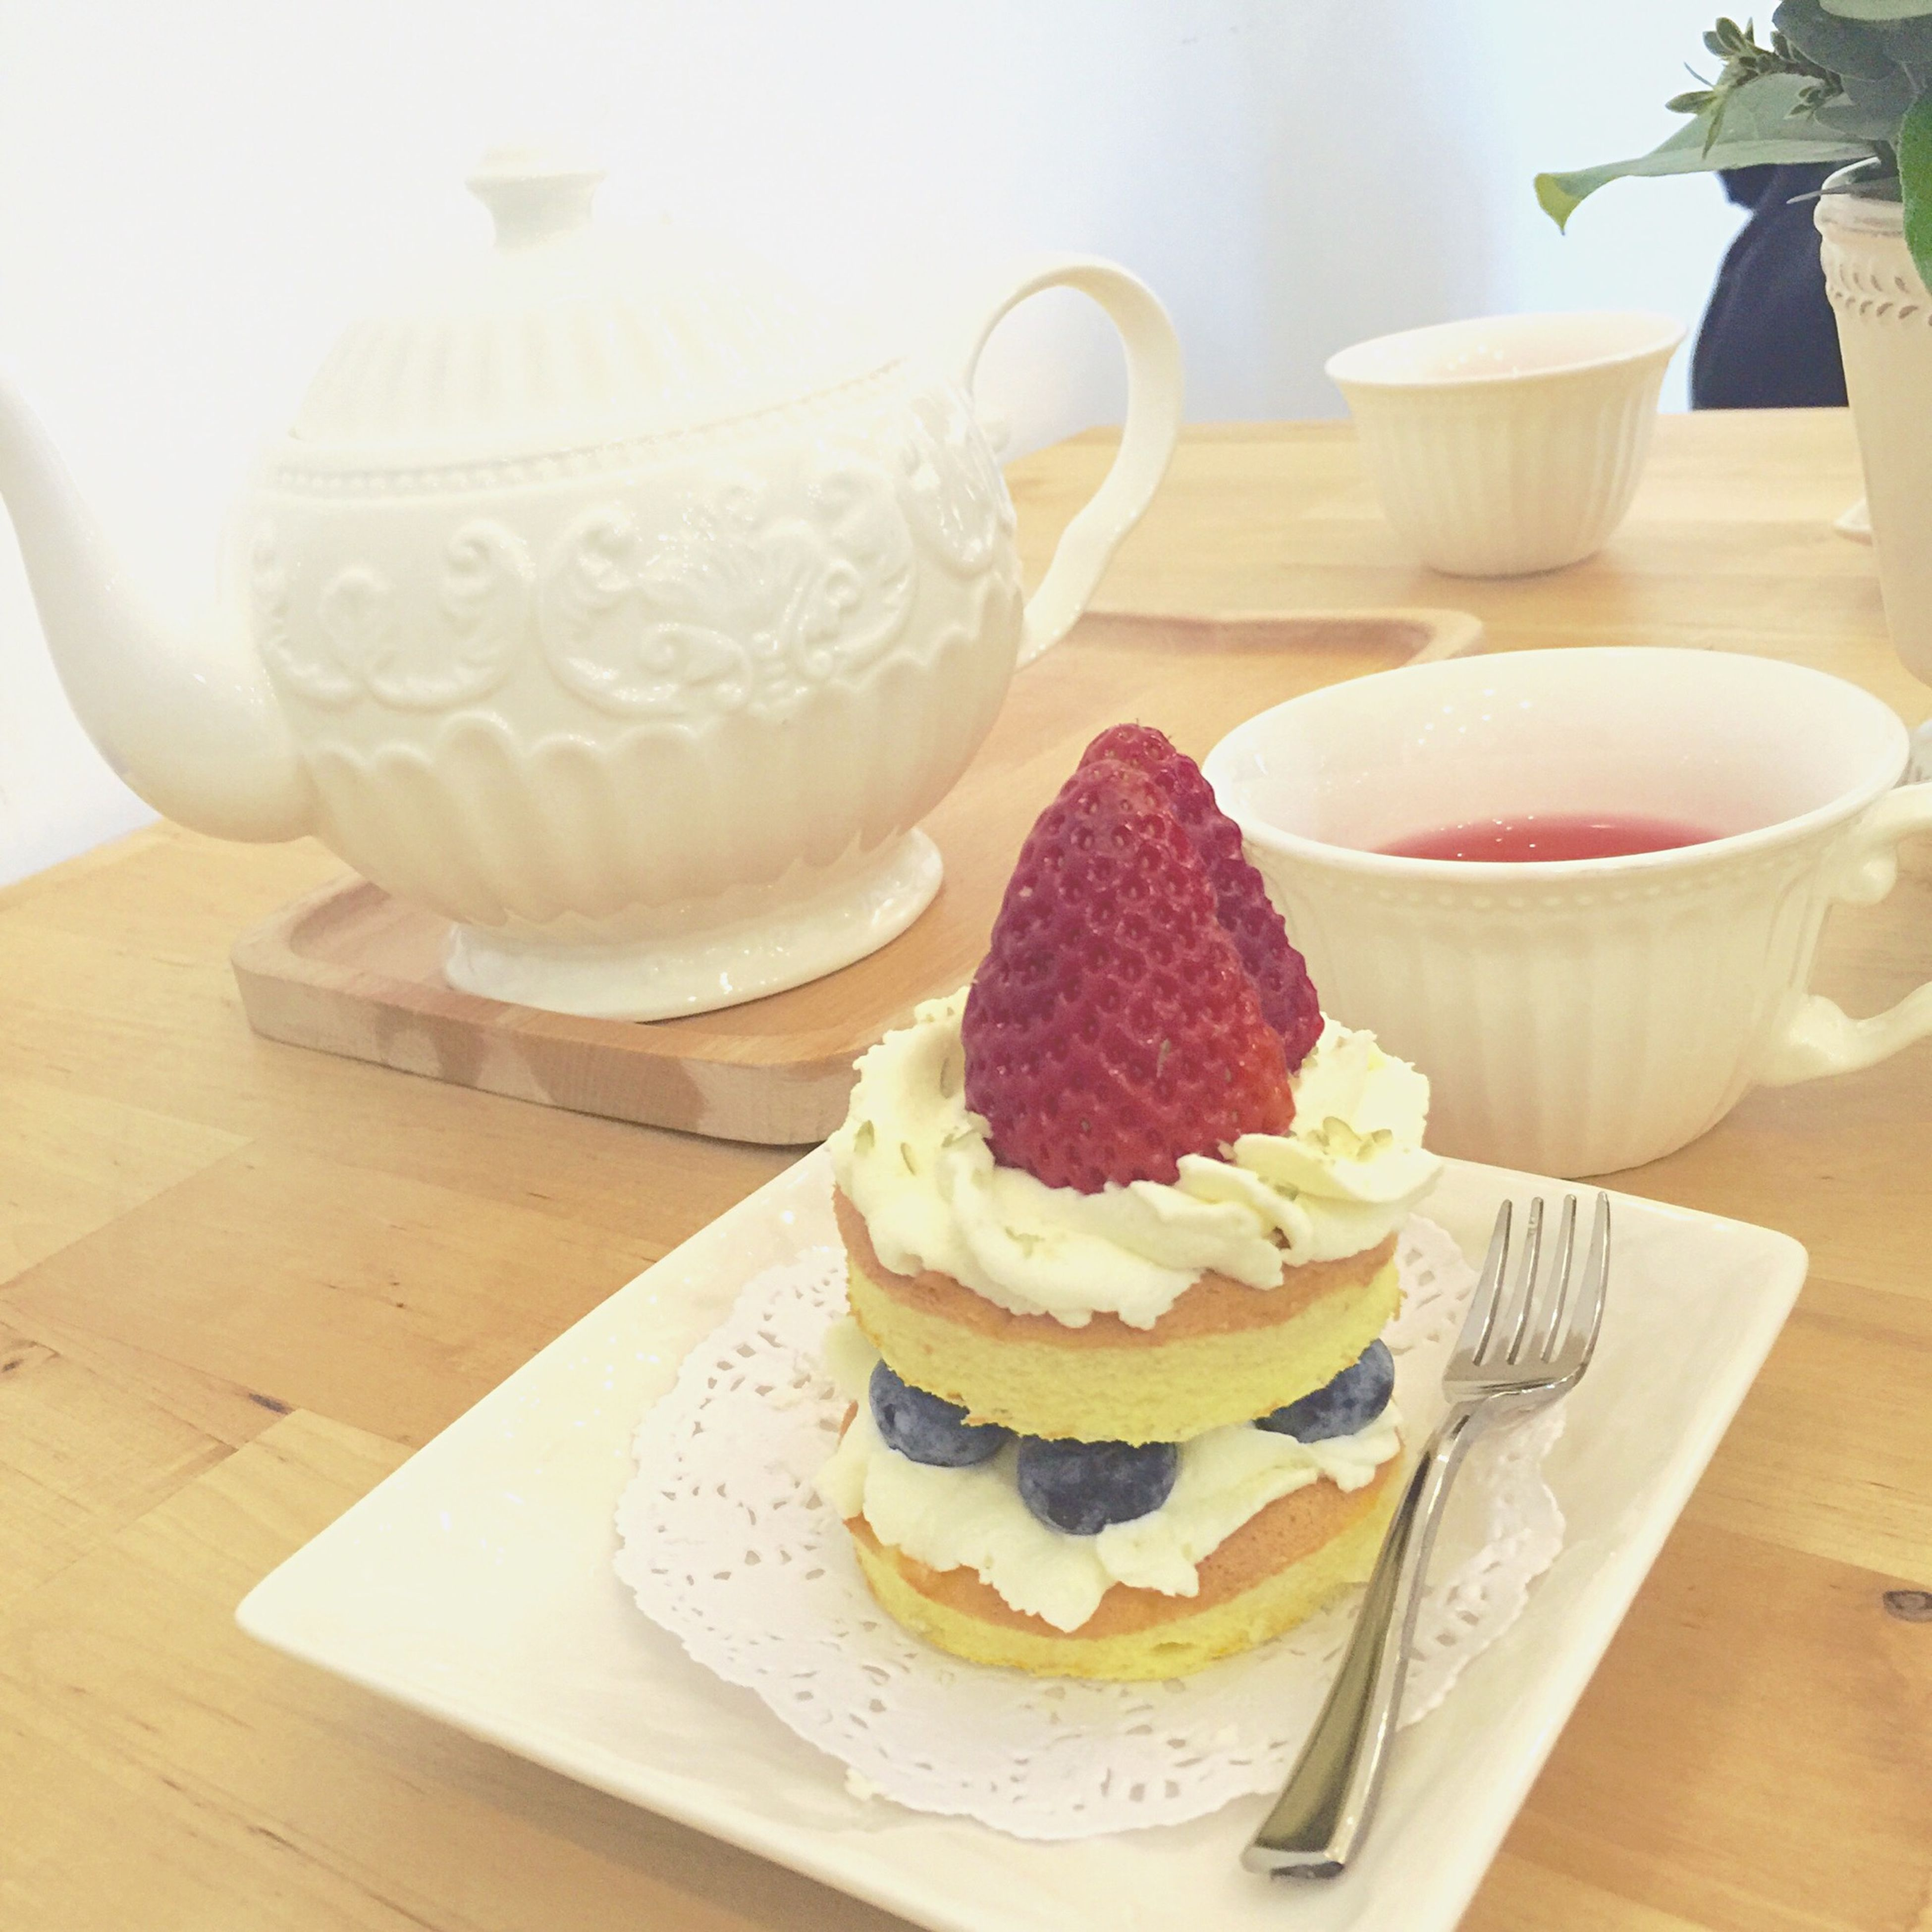 indoors, food and drink, table, freshness, sweet food, still life, plate, dessert, food, ready-to-eat, indulgence, coffee cup, drink, cake, unhealthy eating, refreshment, serving size, high angle view, saucer, decoration